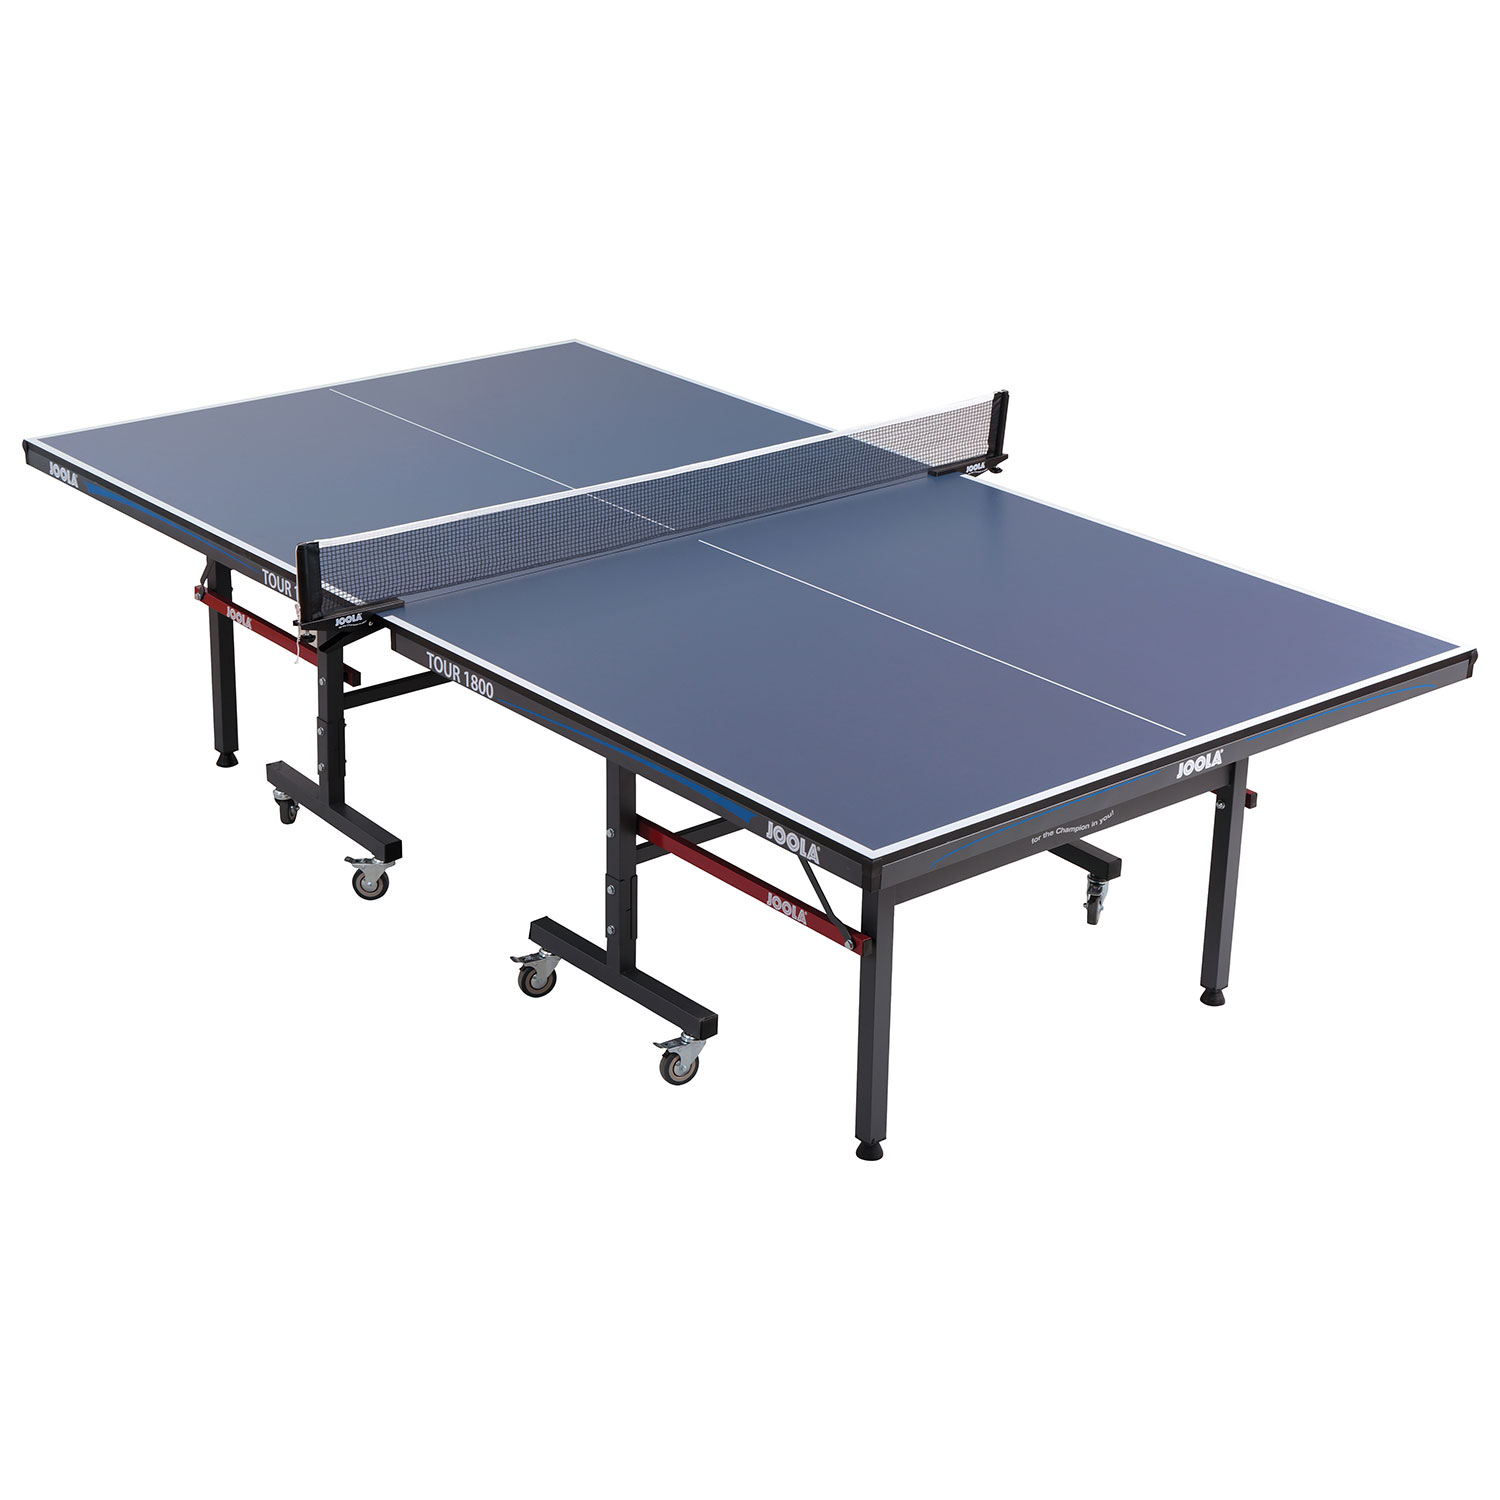 rollaway frame butterfly table outdoor dp year pong weather com top playback tennis ping all amazon warranty